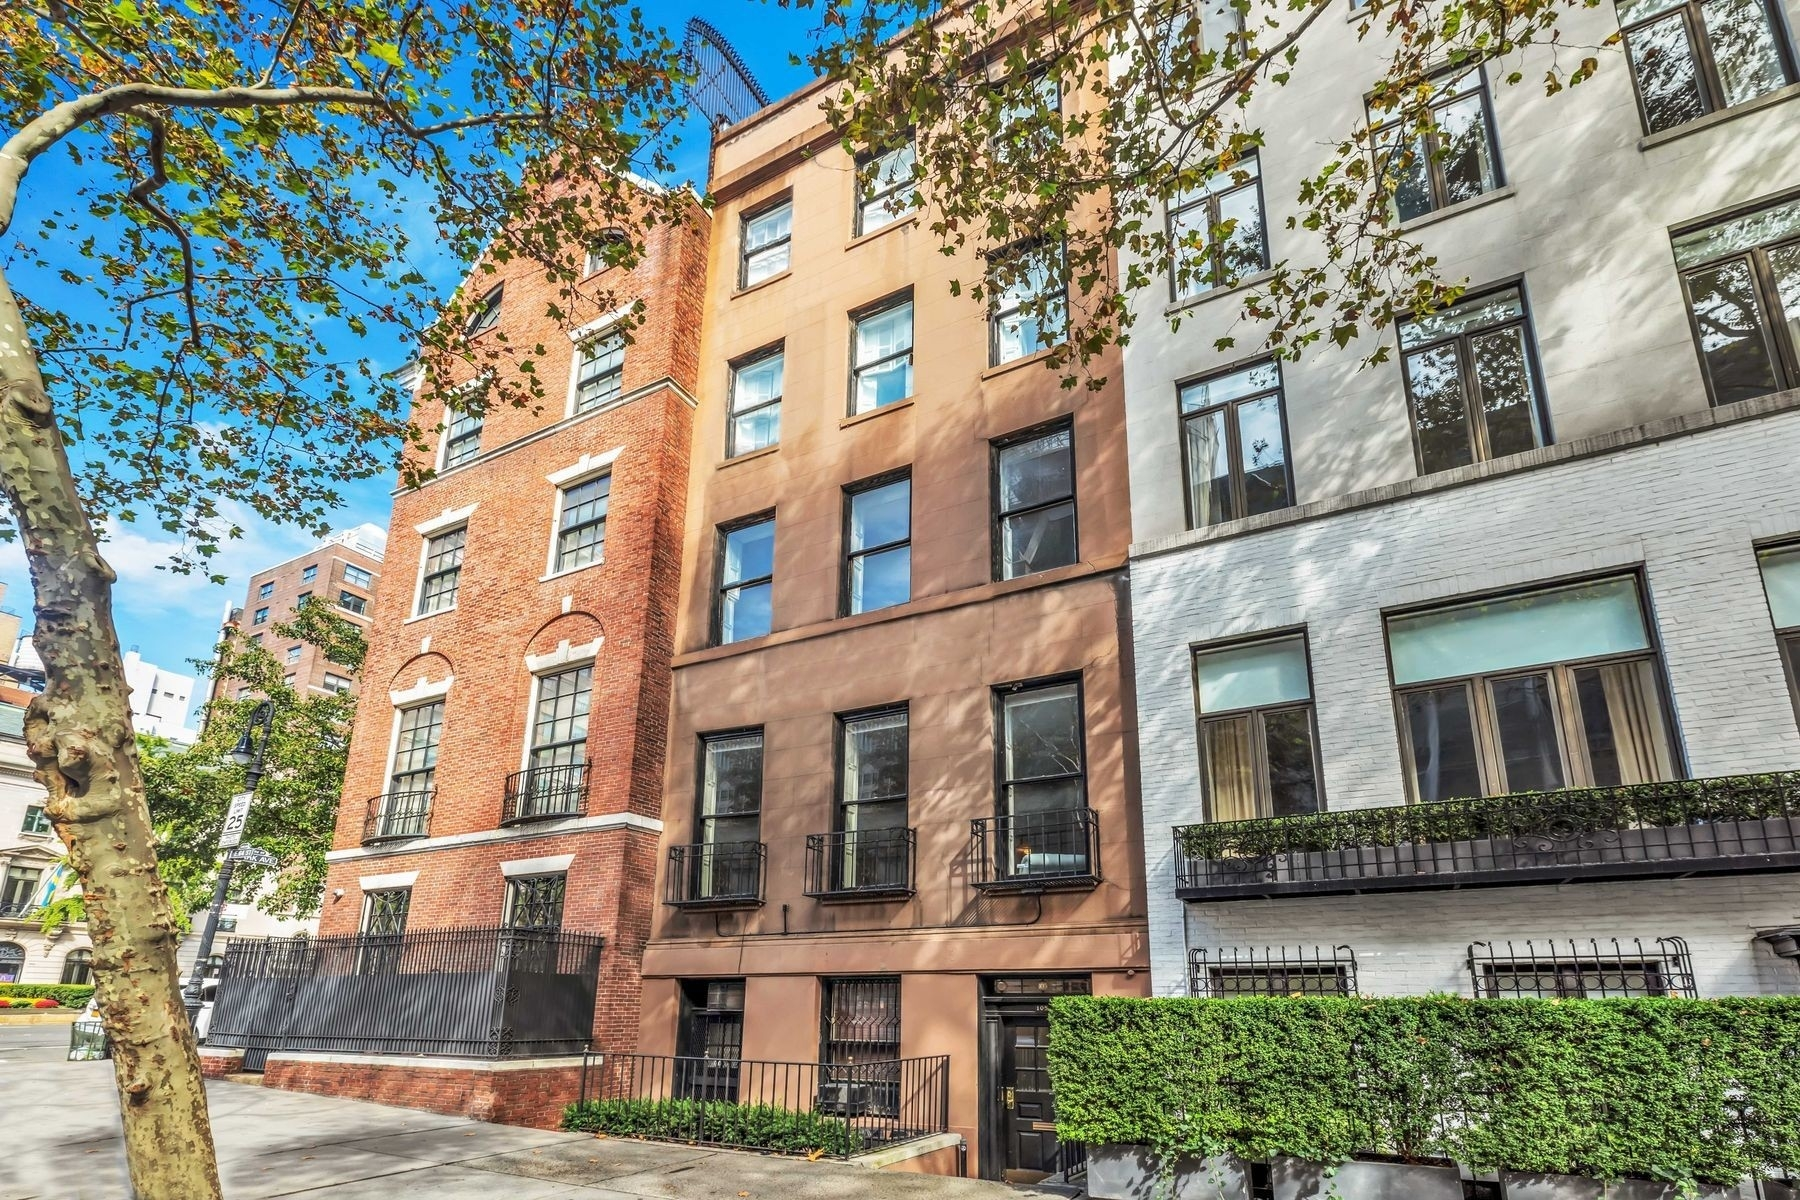 Property en 105 East 64th St, TOWNHOUSE Lenox Hill, New York, NY 10021